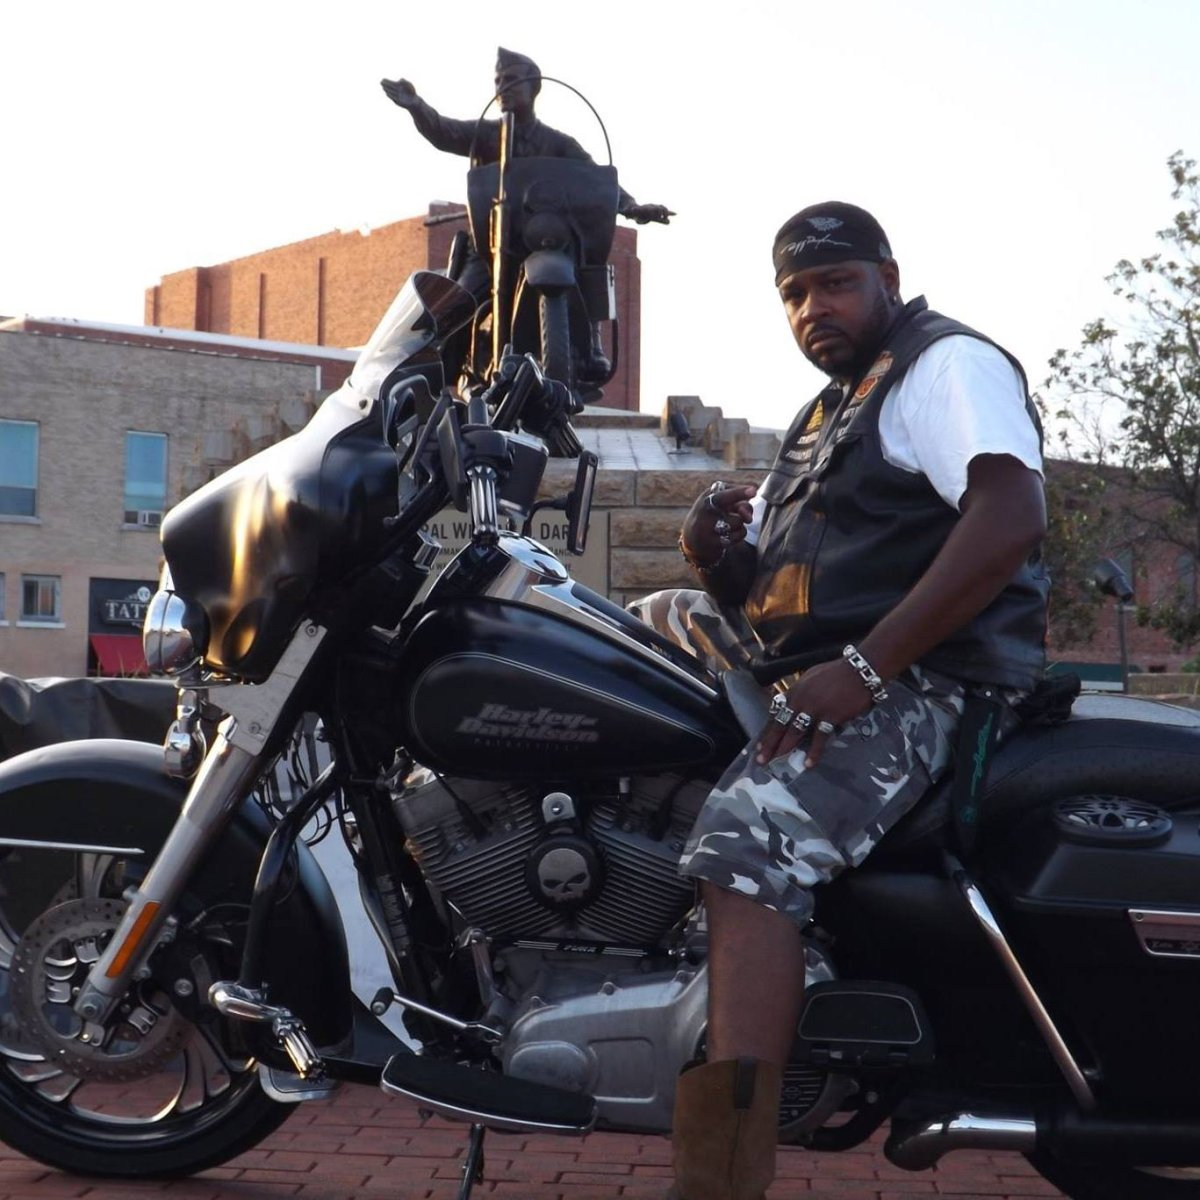 Hudson Valley Ruff Ryders are all about community